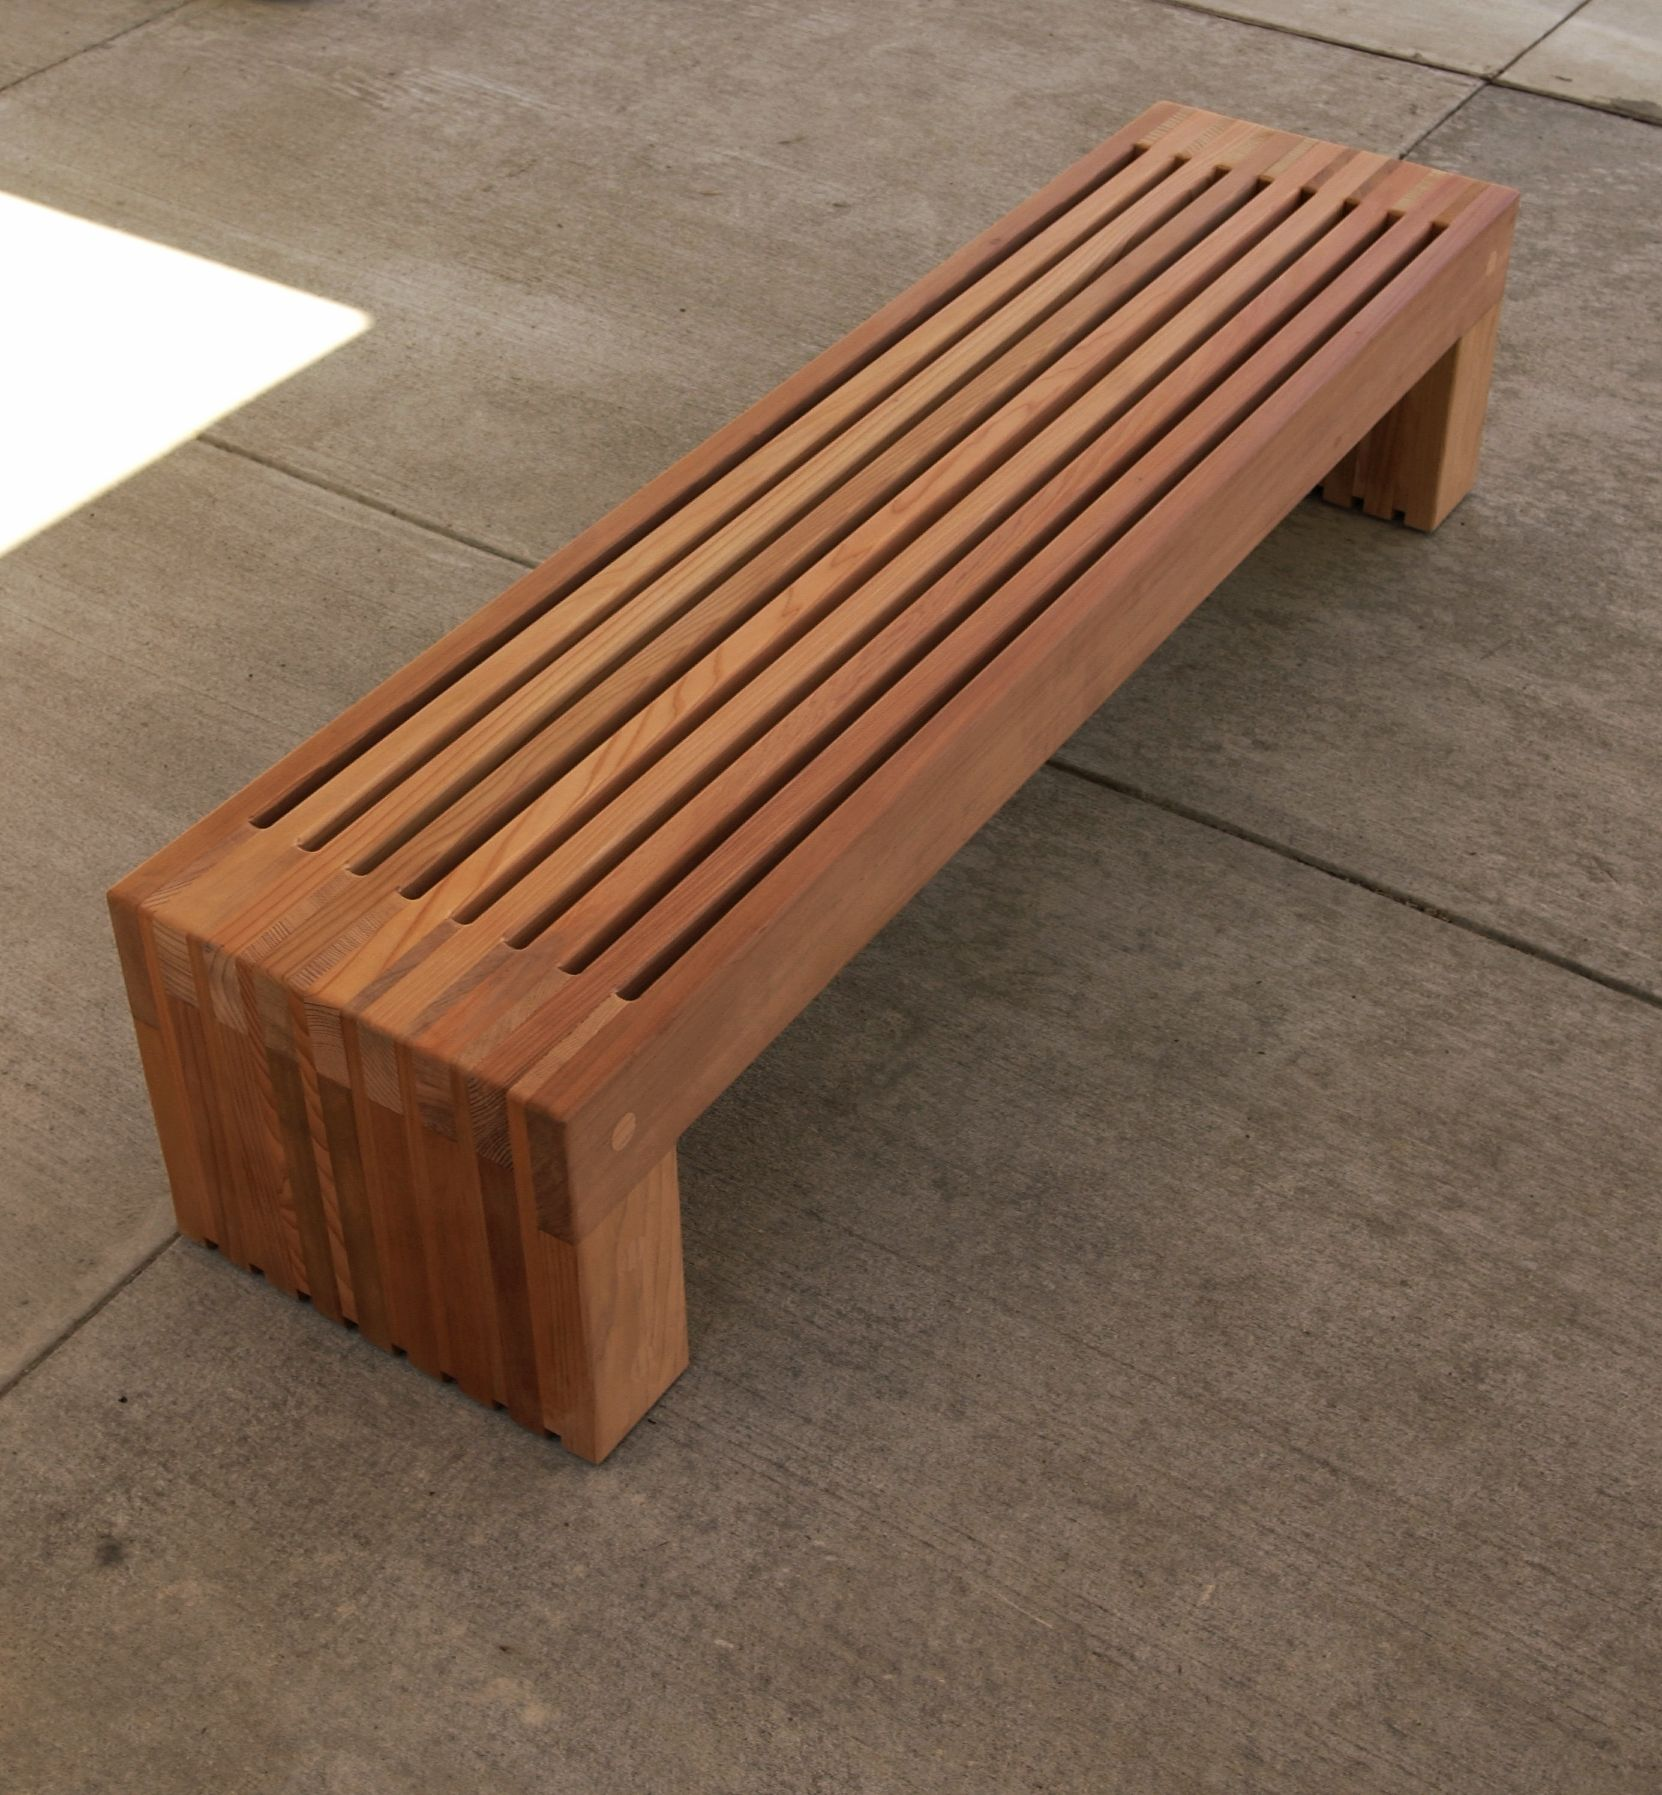 Modern Furniture Bench summer is coming, so you need a bench like this | bench designs